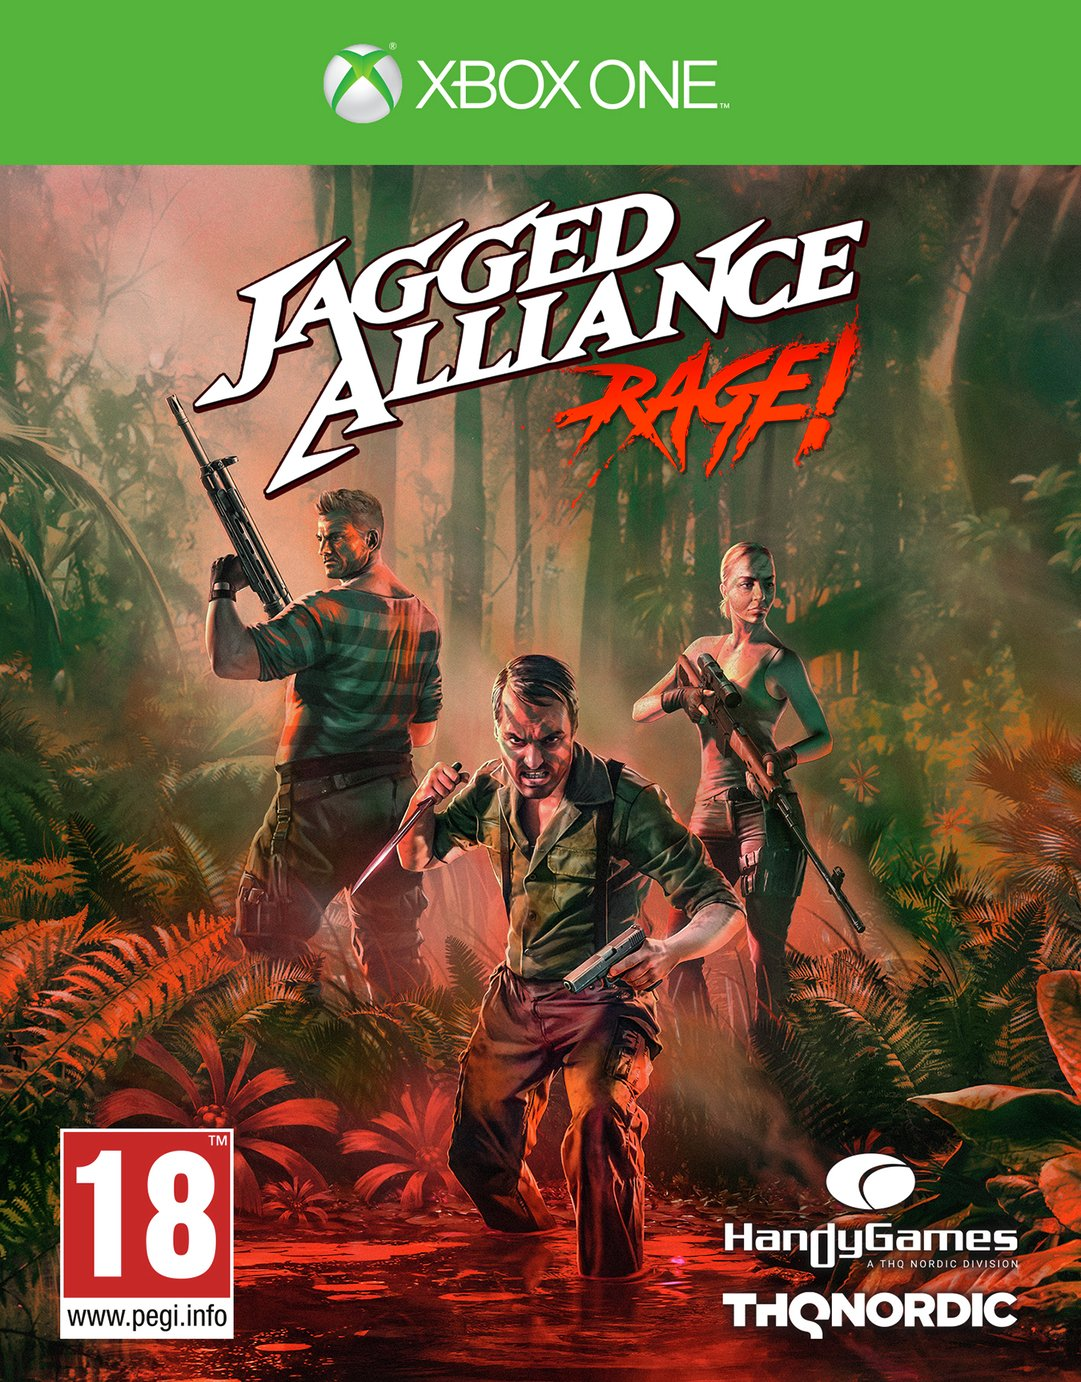 Jagged Alliance: Rage Xbox One Game